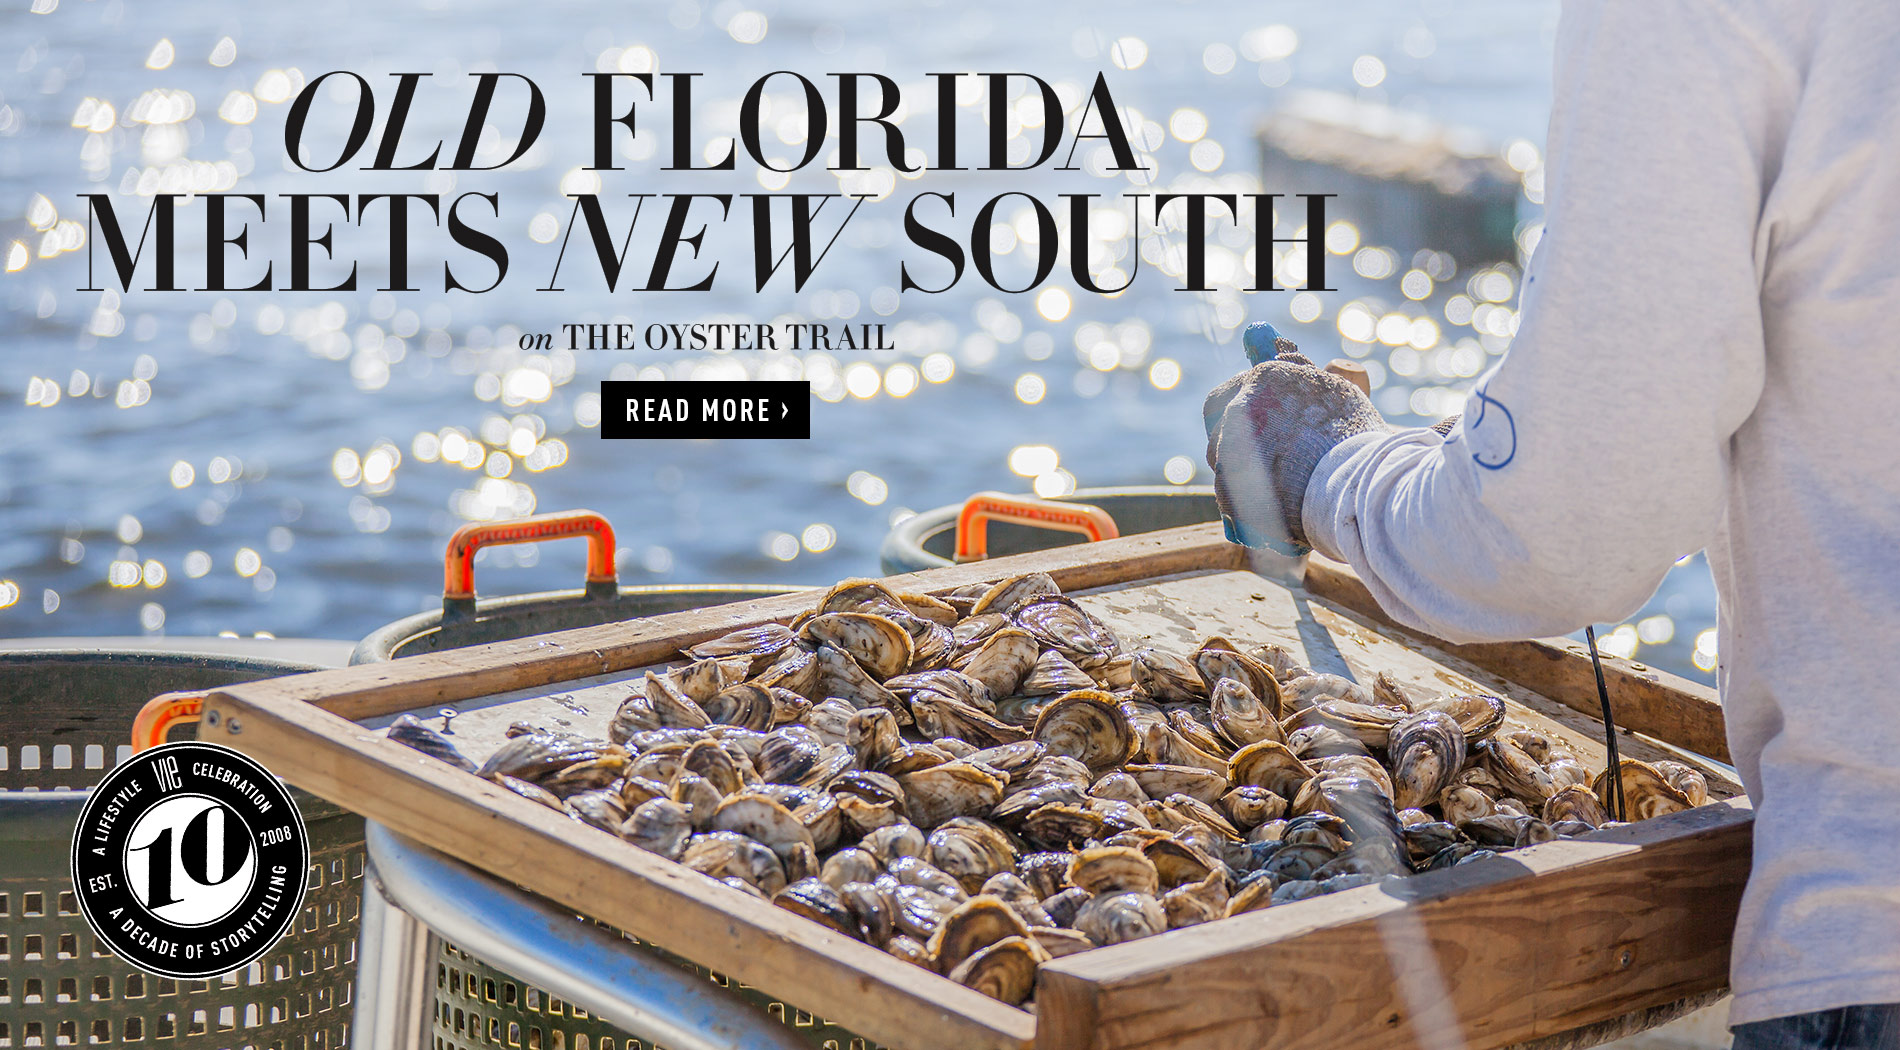 VIE Magazine - The Goodness Issue - November 2018 - Florida Oyster Trail